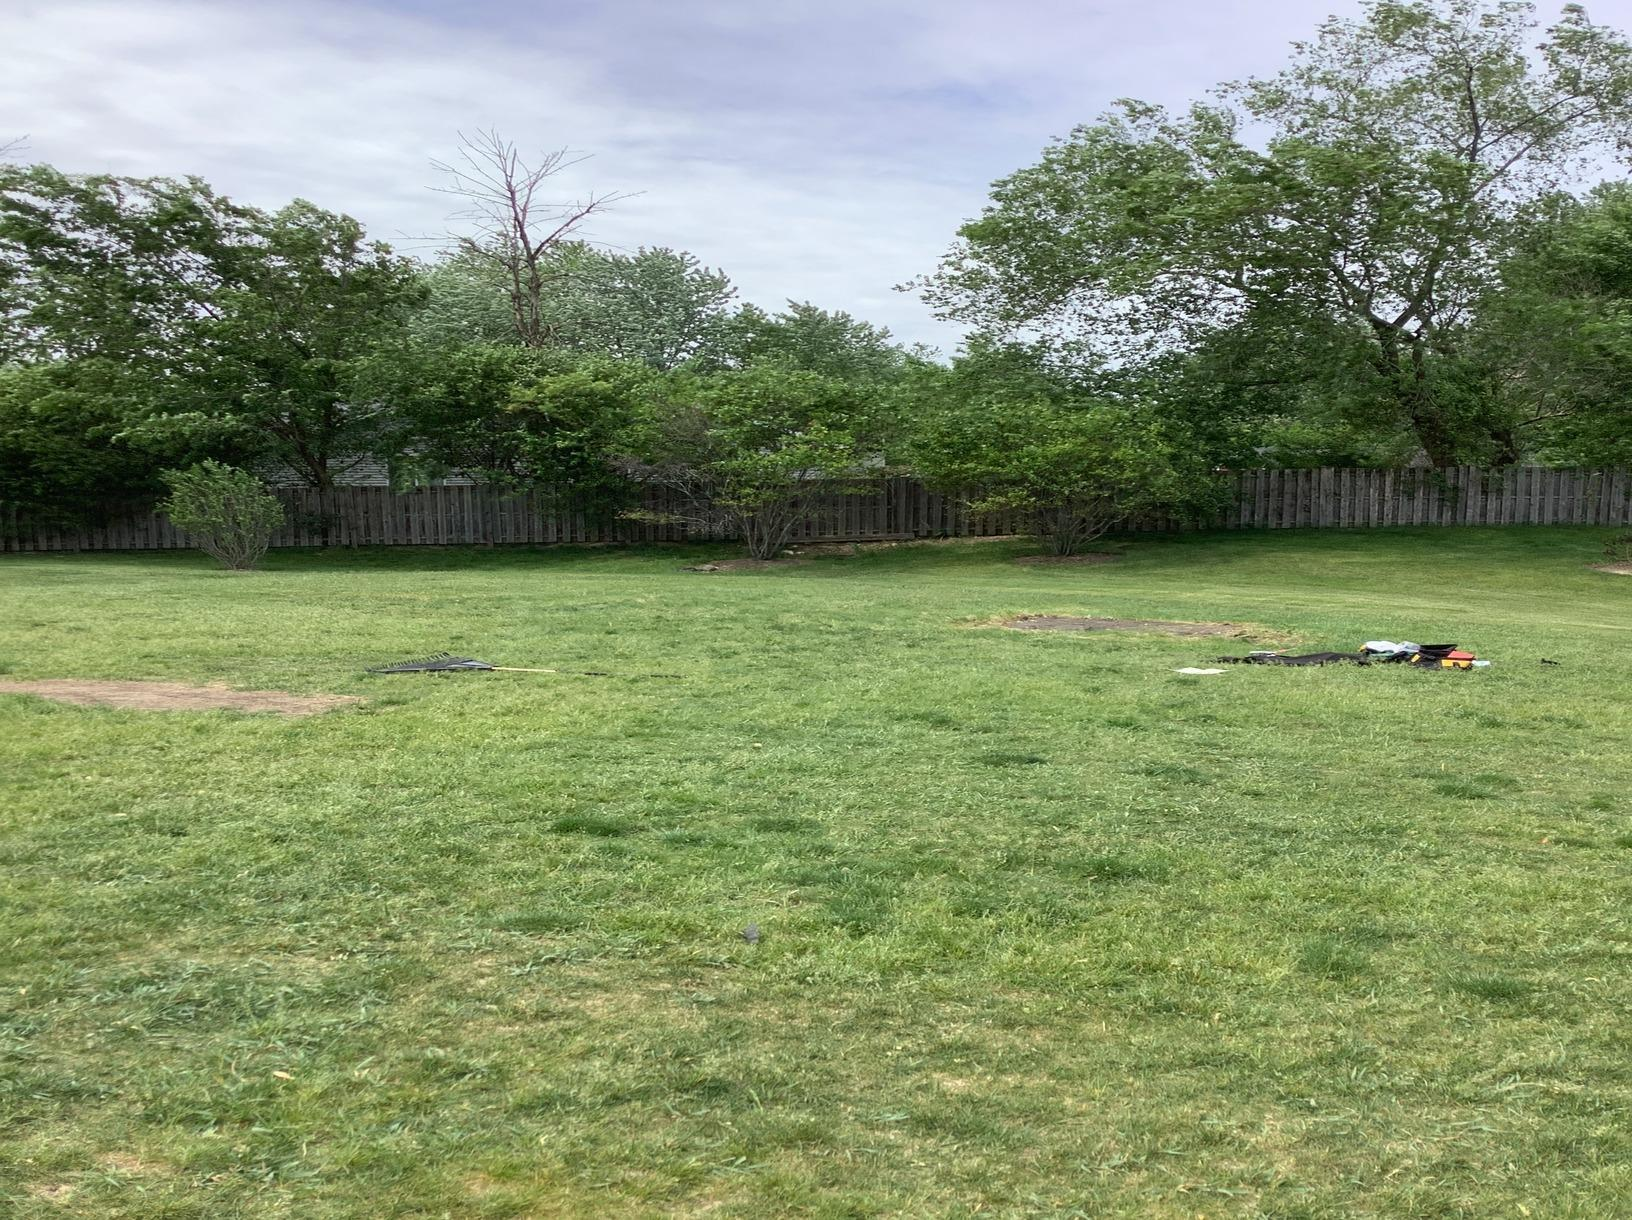 Saint Charles, IL Spring Cleaning Yard Debris Playground Removal - After Photo